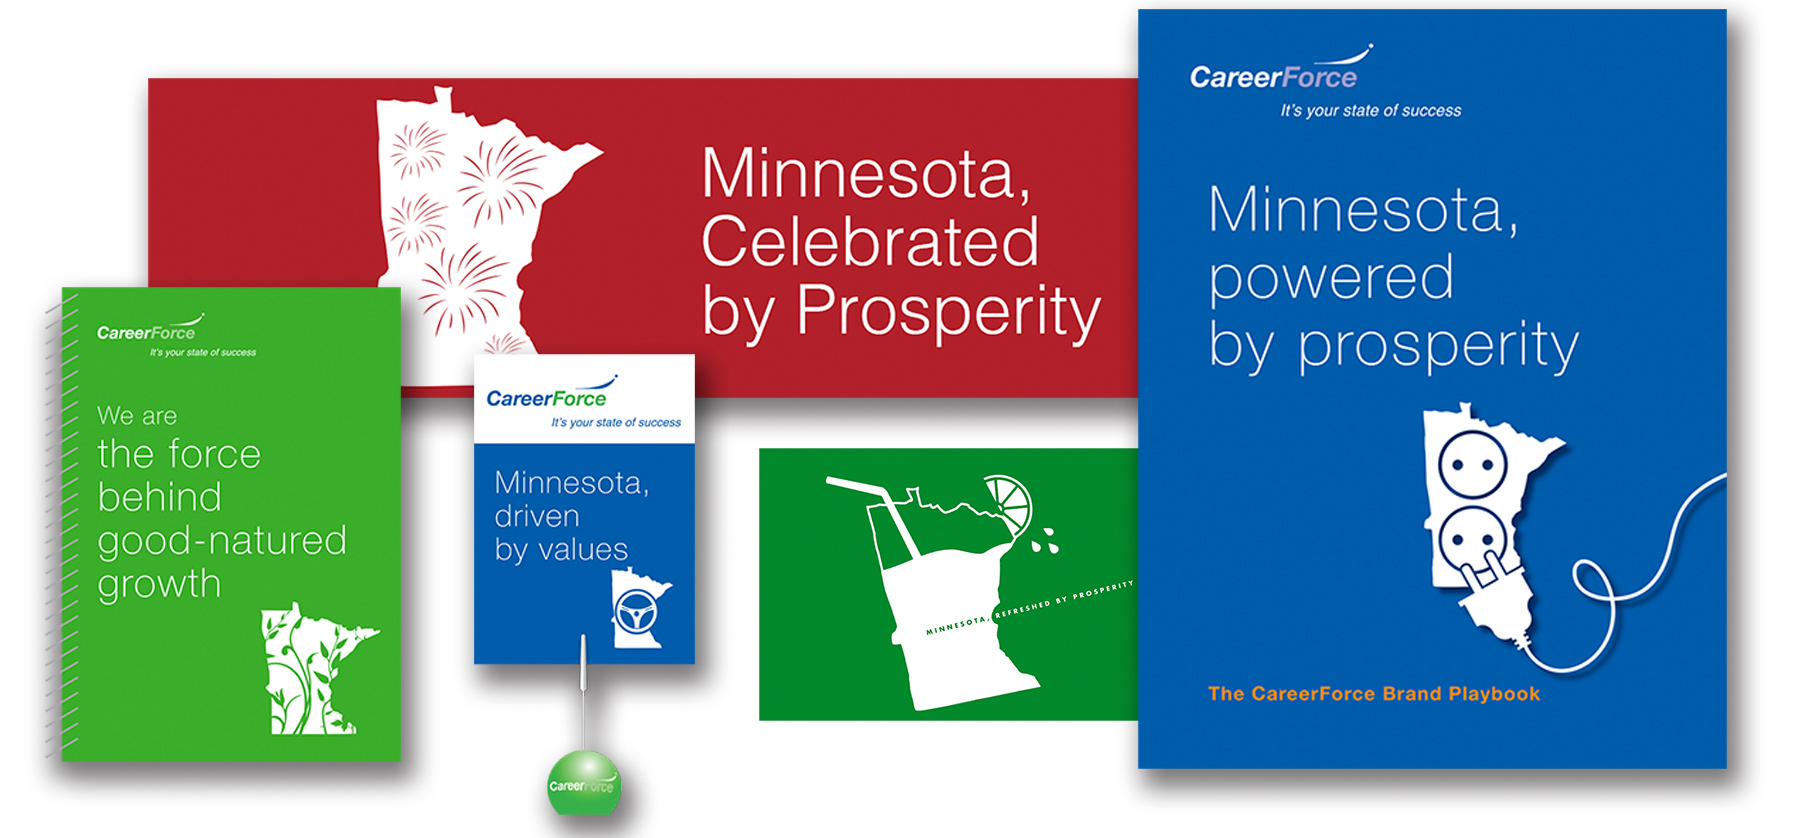 A selection of internal CareerForce materials, booklets and literature